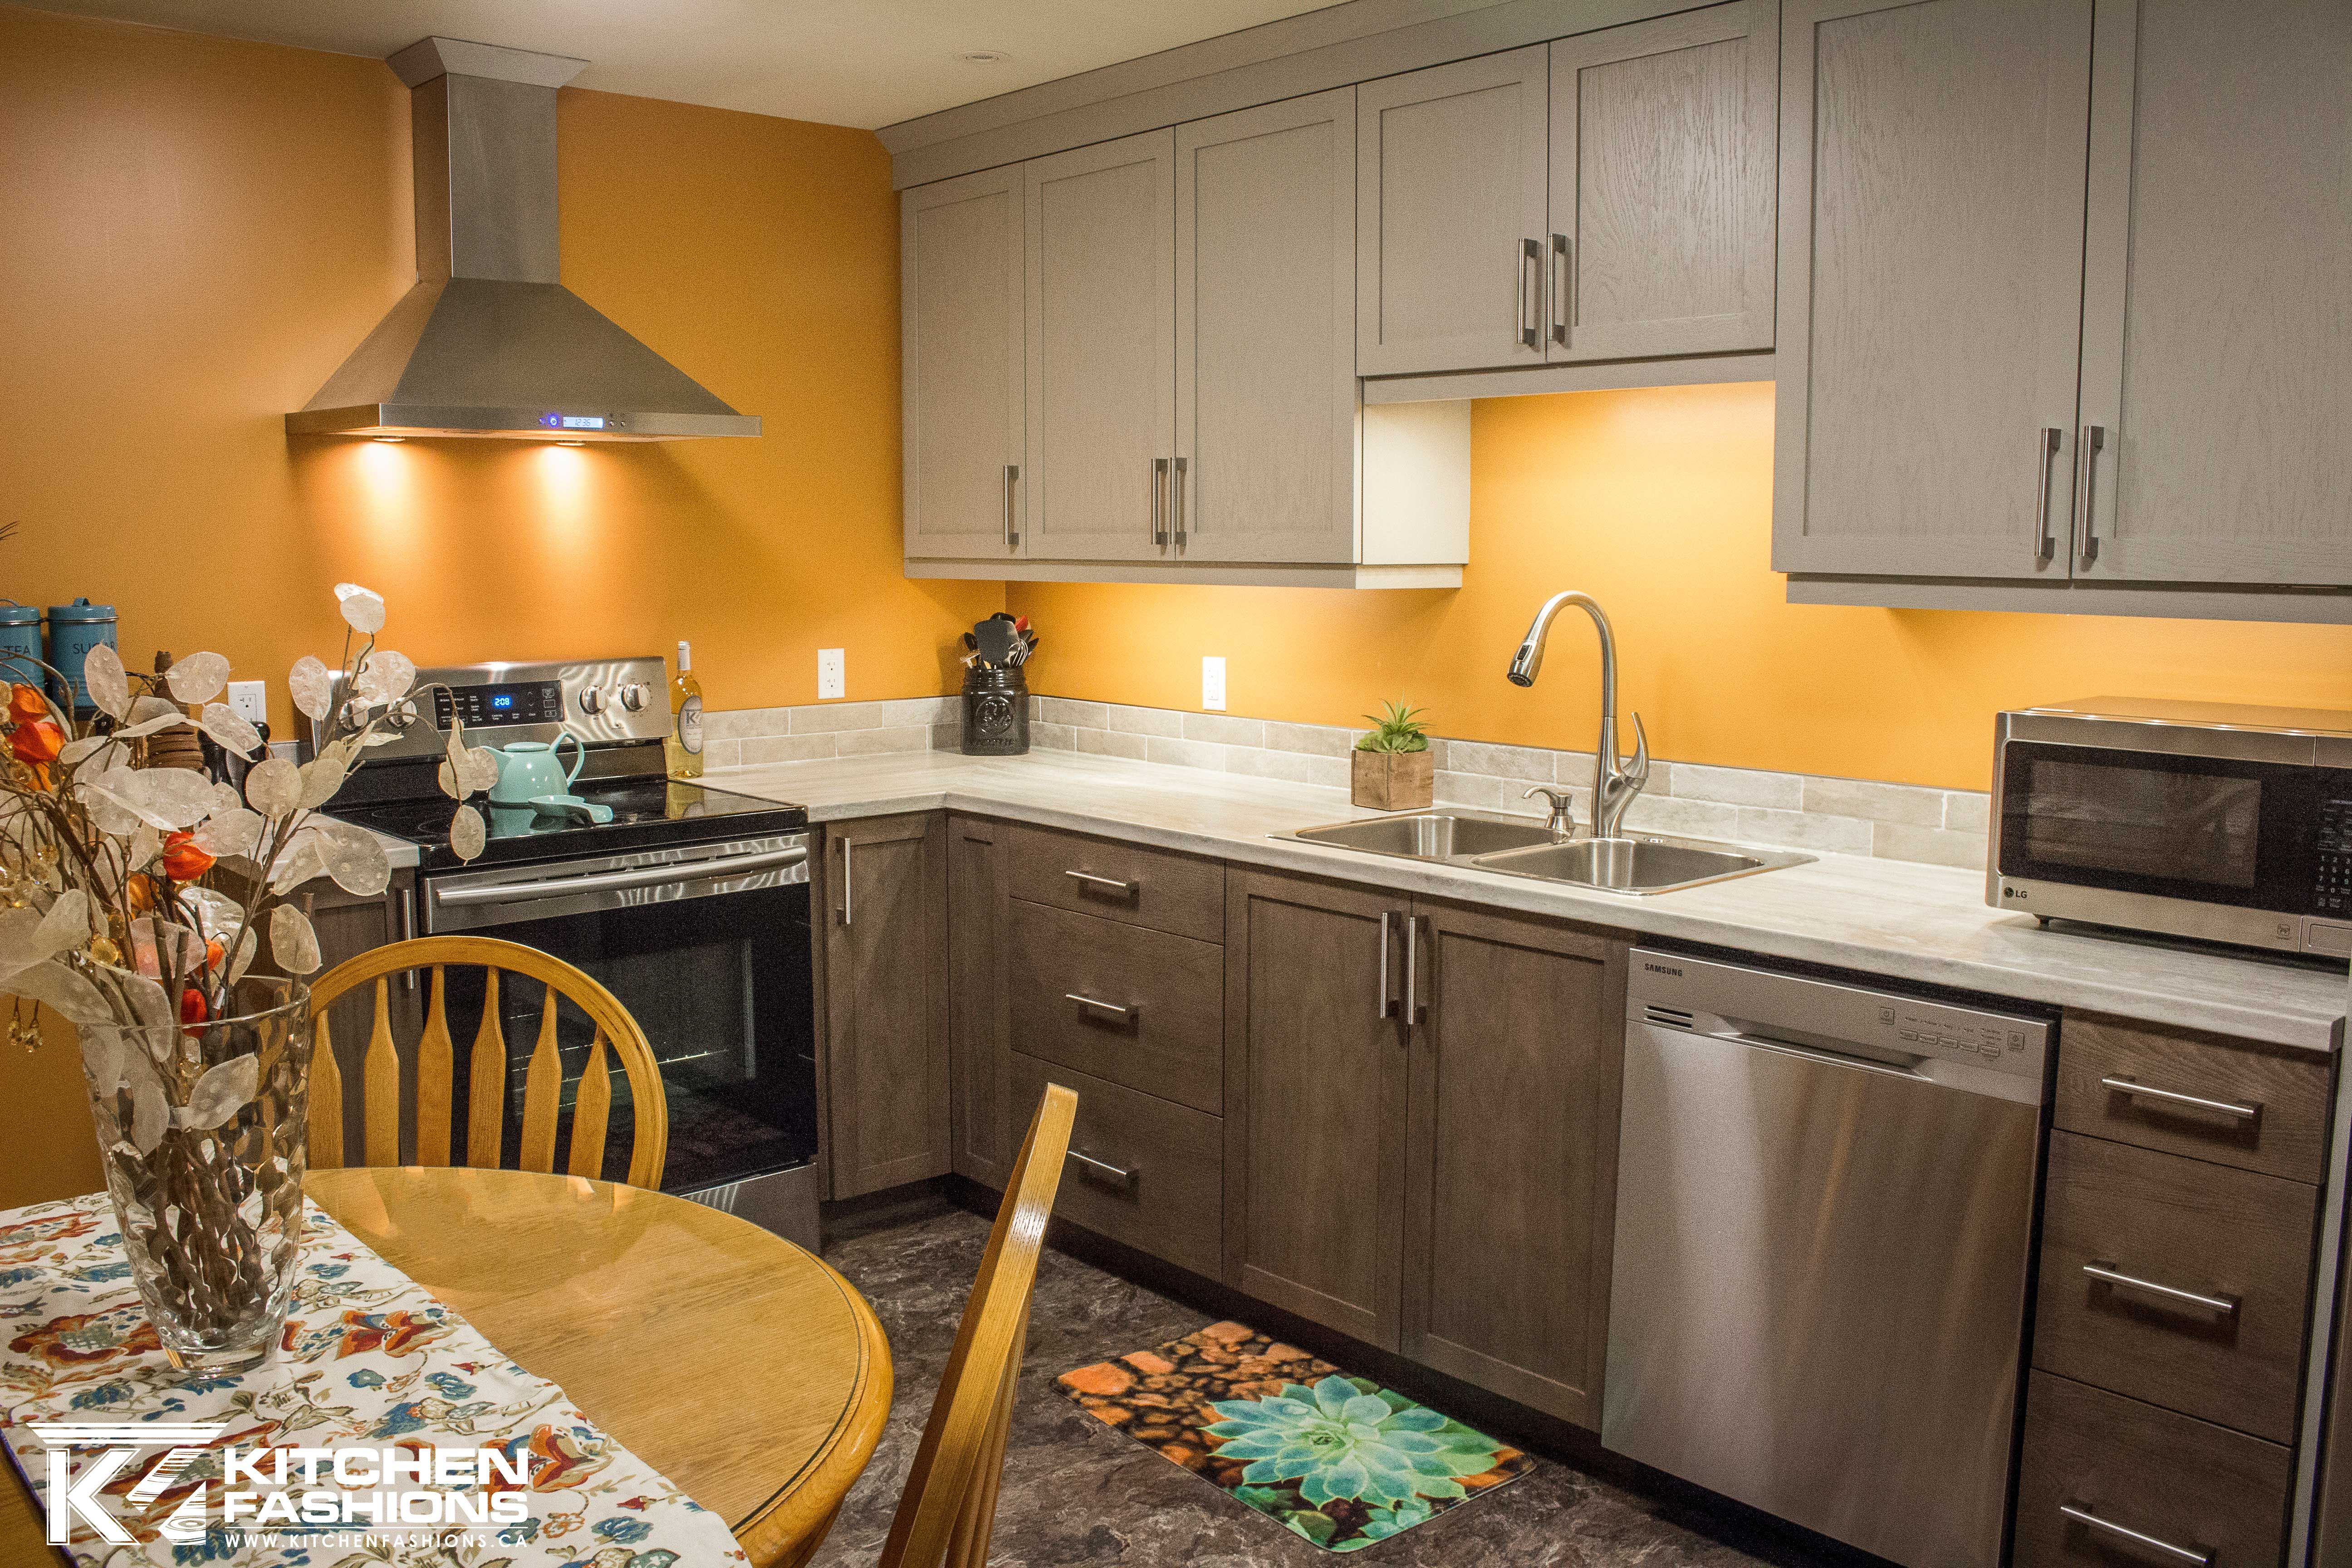 Orange Walls Grey And Brown Cabinets Kitchen Inspirations Brown Cabinets Contemporary Cabinets